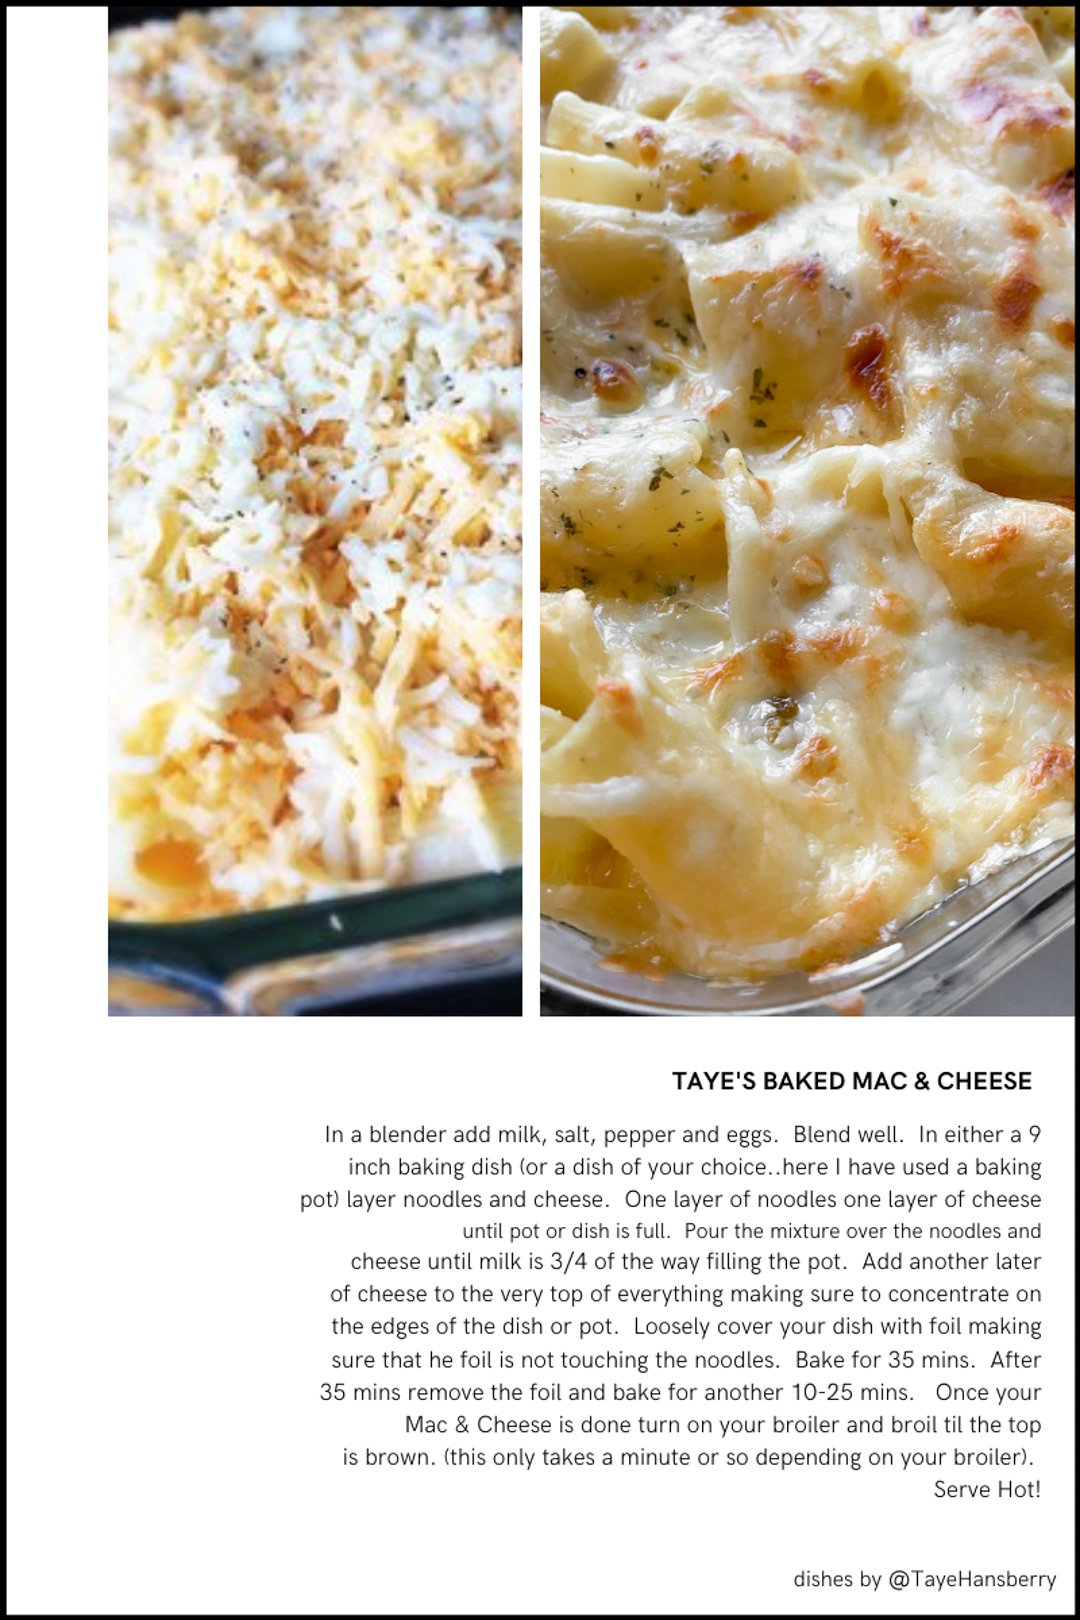 TAYE HANSBERRY'S baked mac and cheese recipe